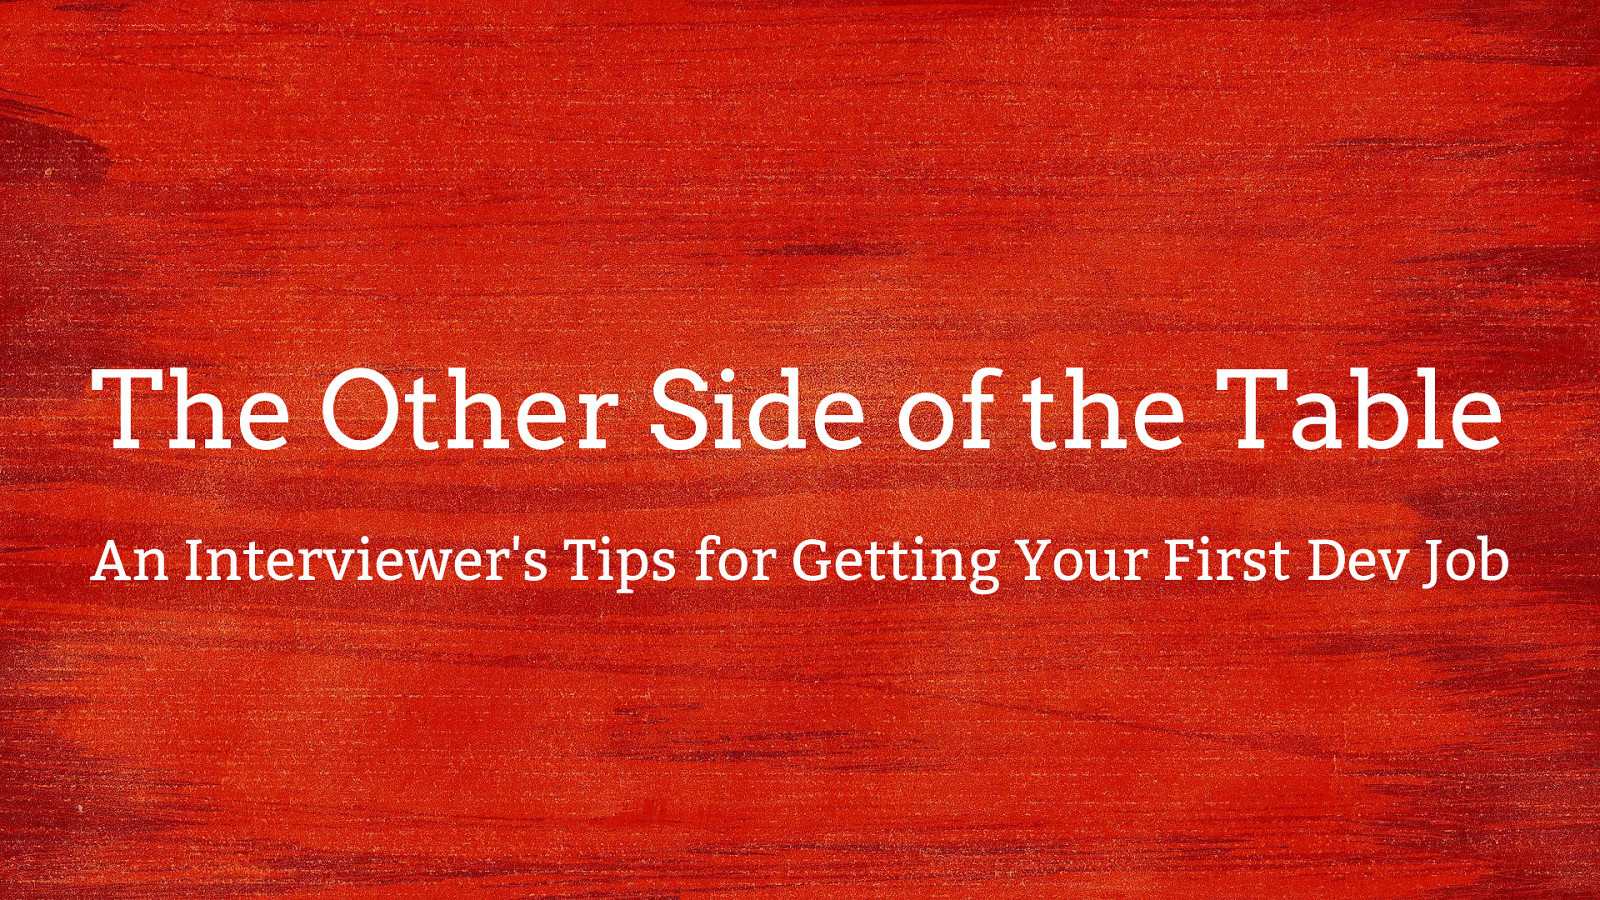 The Other Side of the Table: An Interviewer's Tips for Getting Your First Dev Job